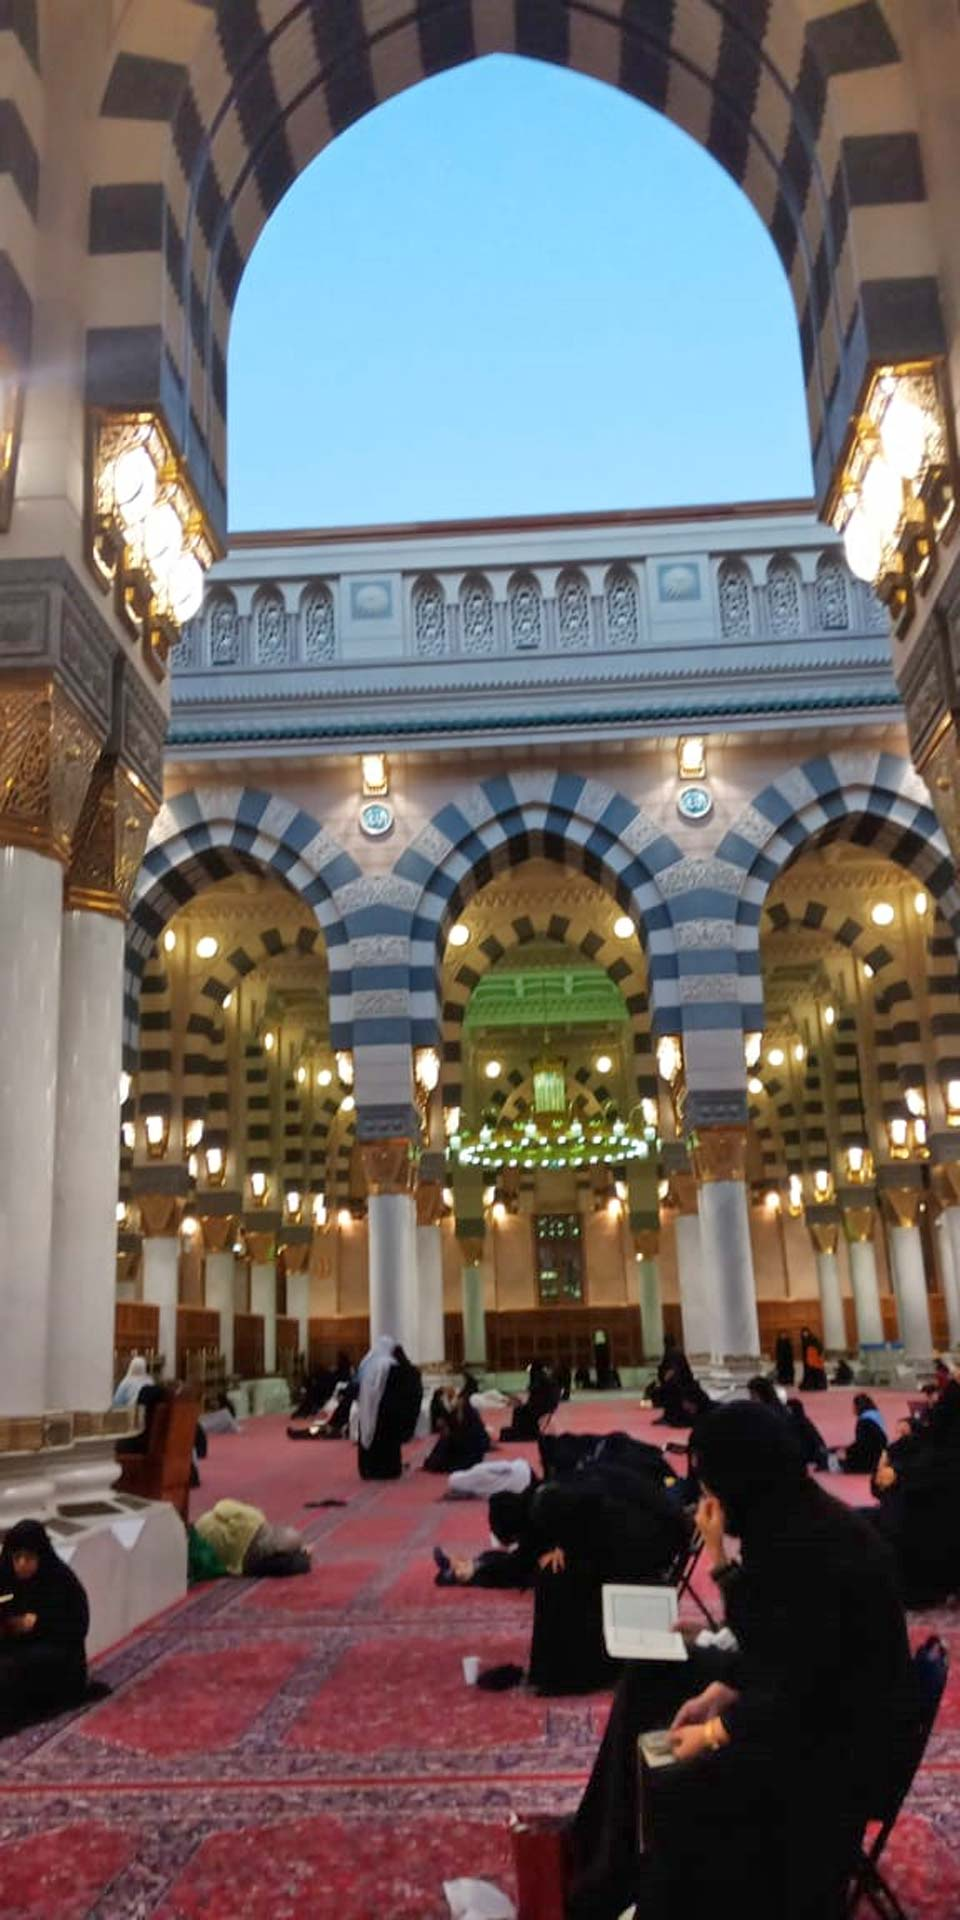 Inside portion of Masjid-e-Nabwi with the top roof open